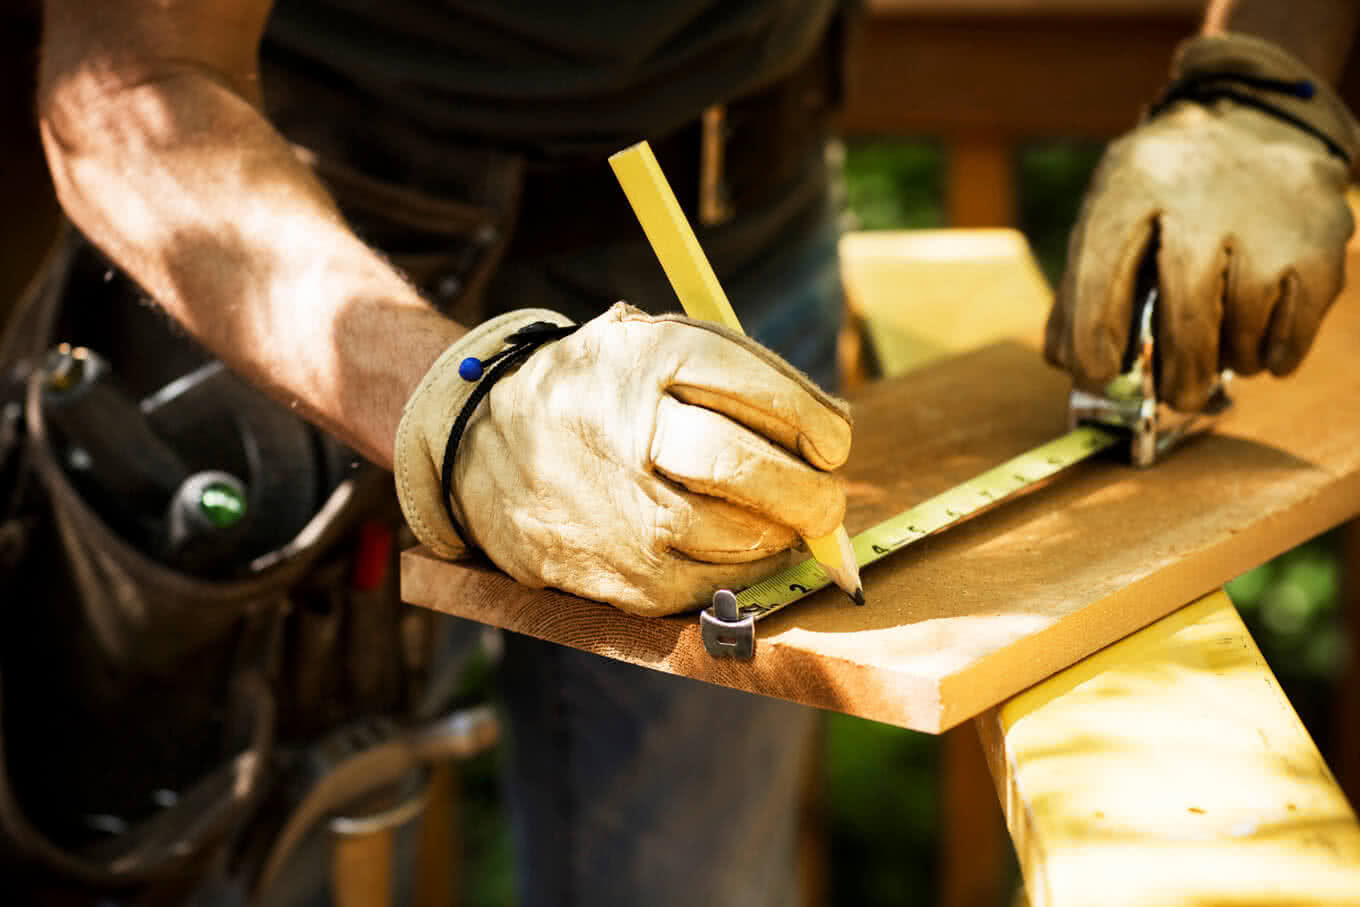 Carpenter measuring a wooden plank at a construction site